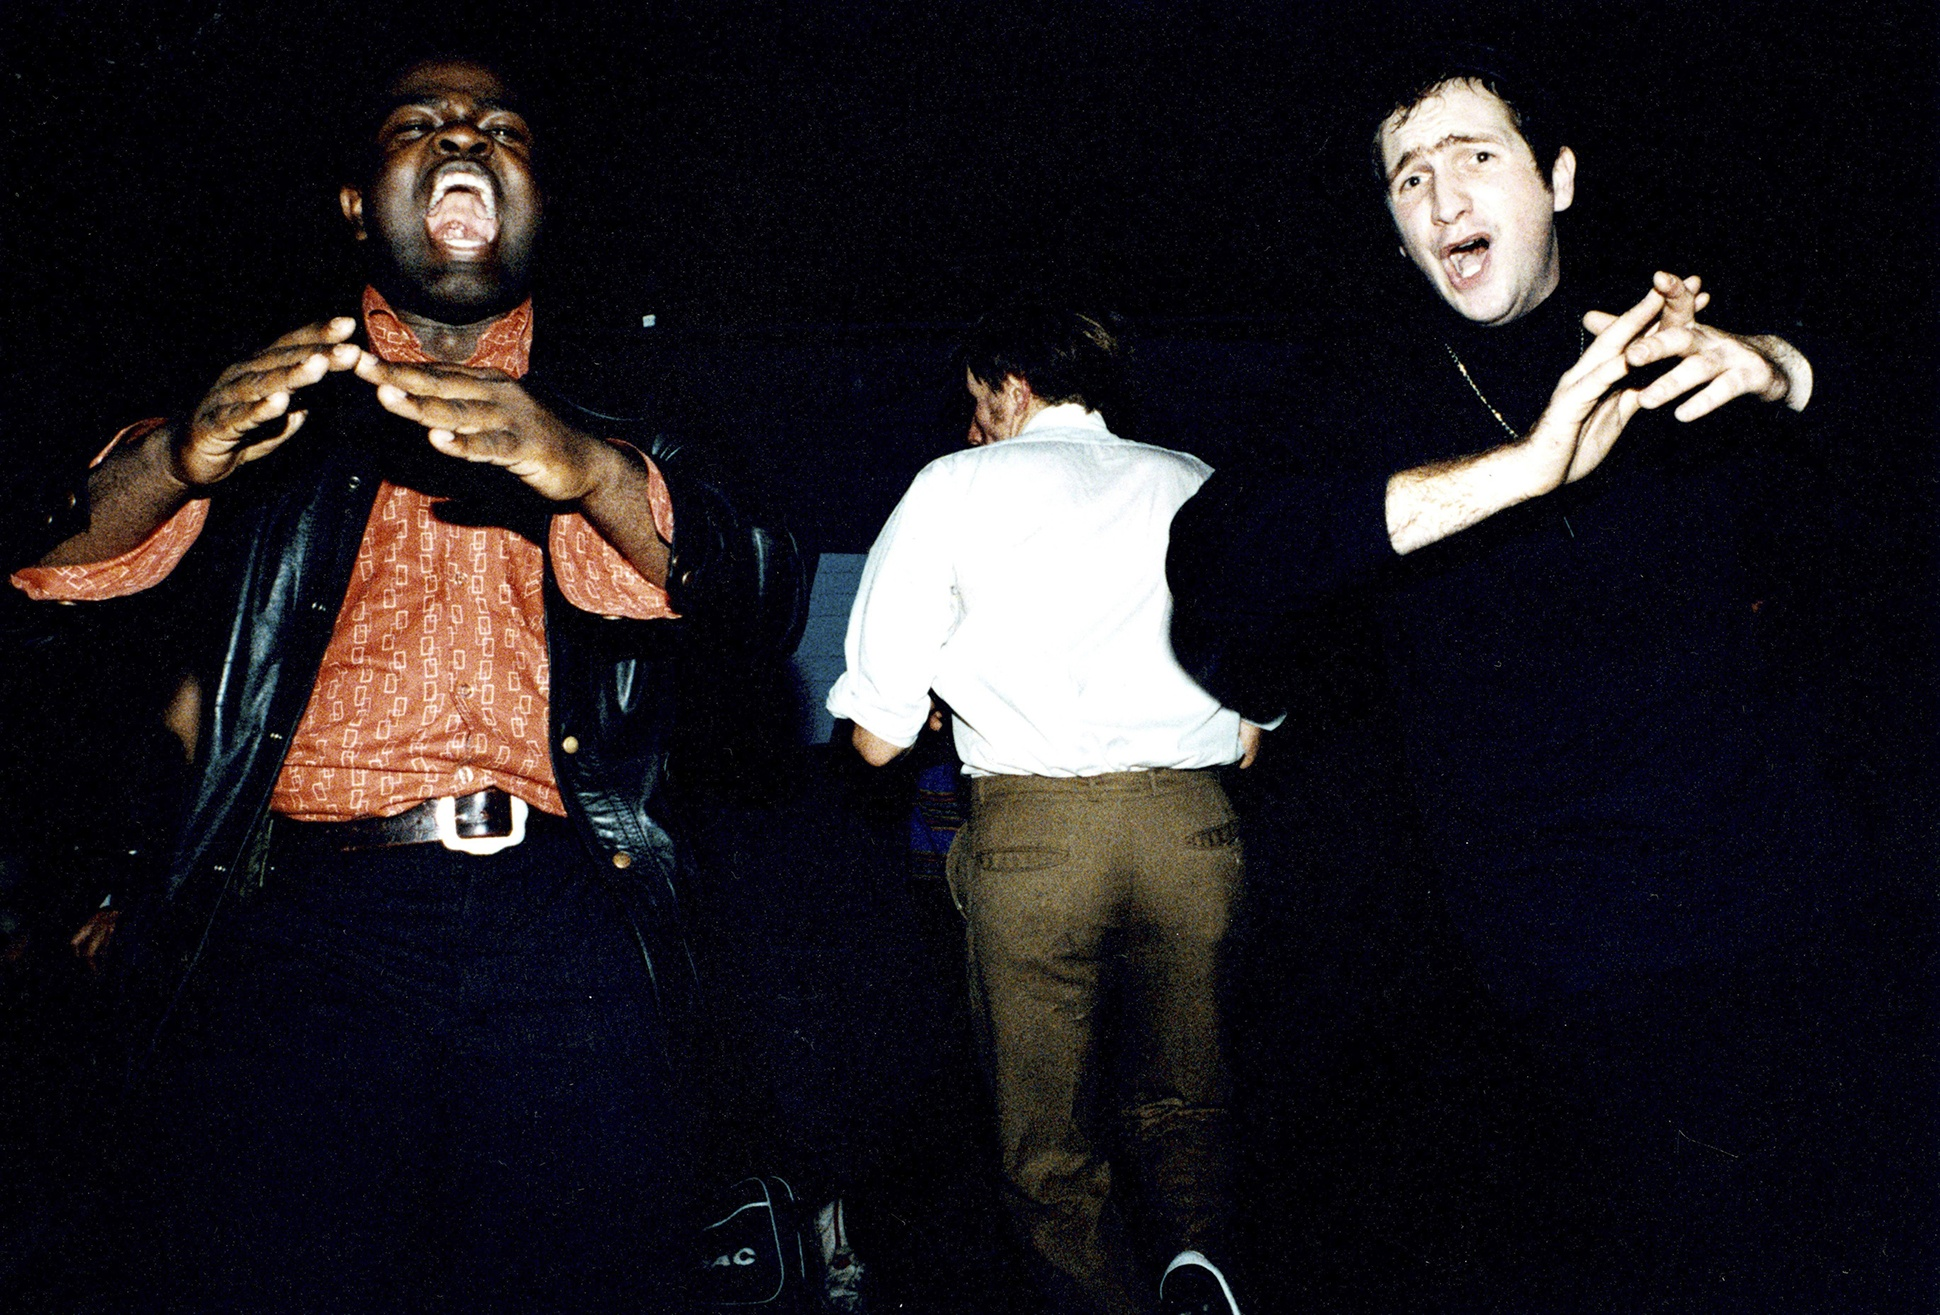 Two Northern Soul dancers clapping on the dance floor at an allnighter, London, 1990s by Rebecca Lewis